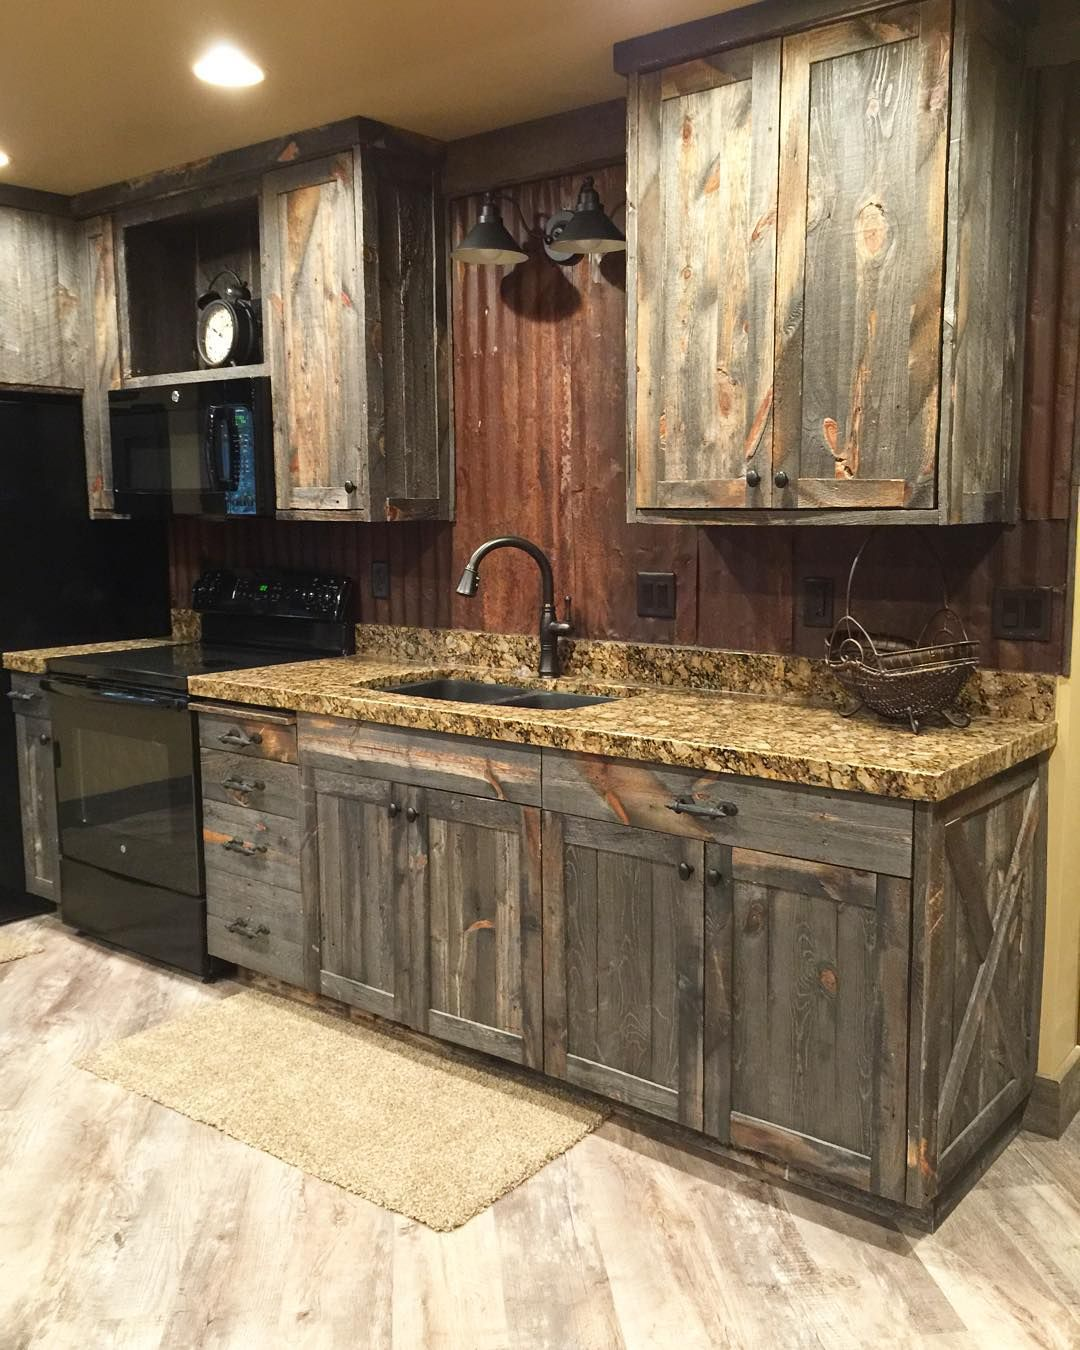 A little barnwood kitchen cabinets and corrugated steel backsplash love how rustic and homey it